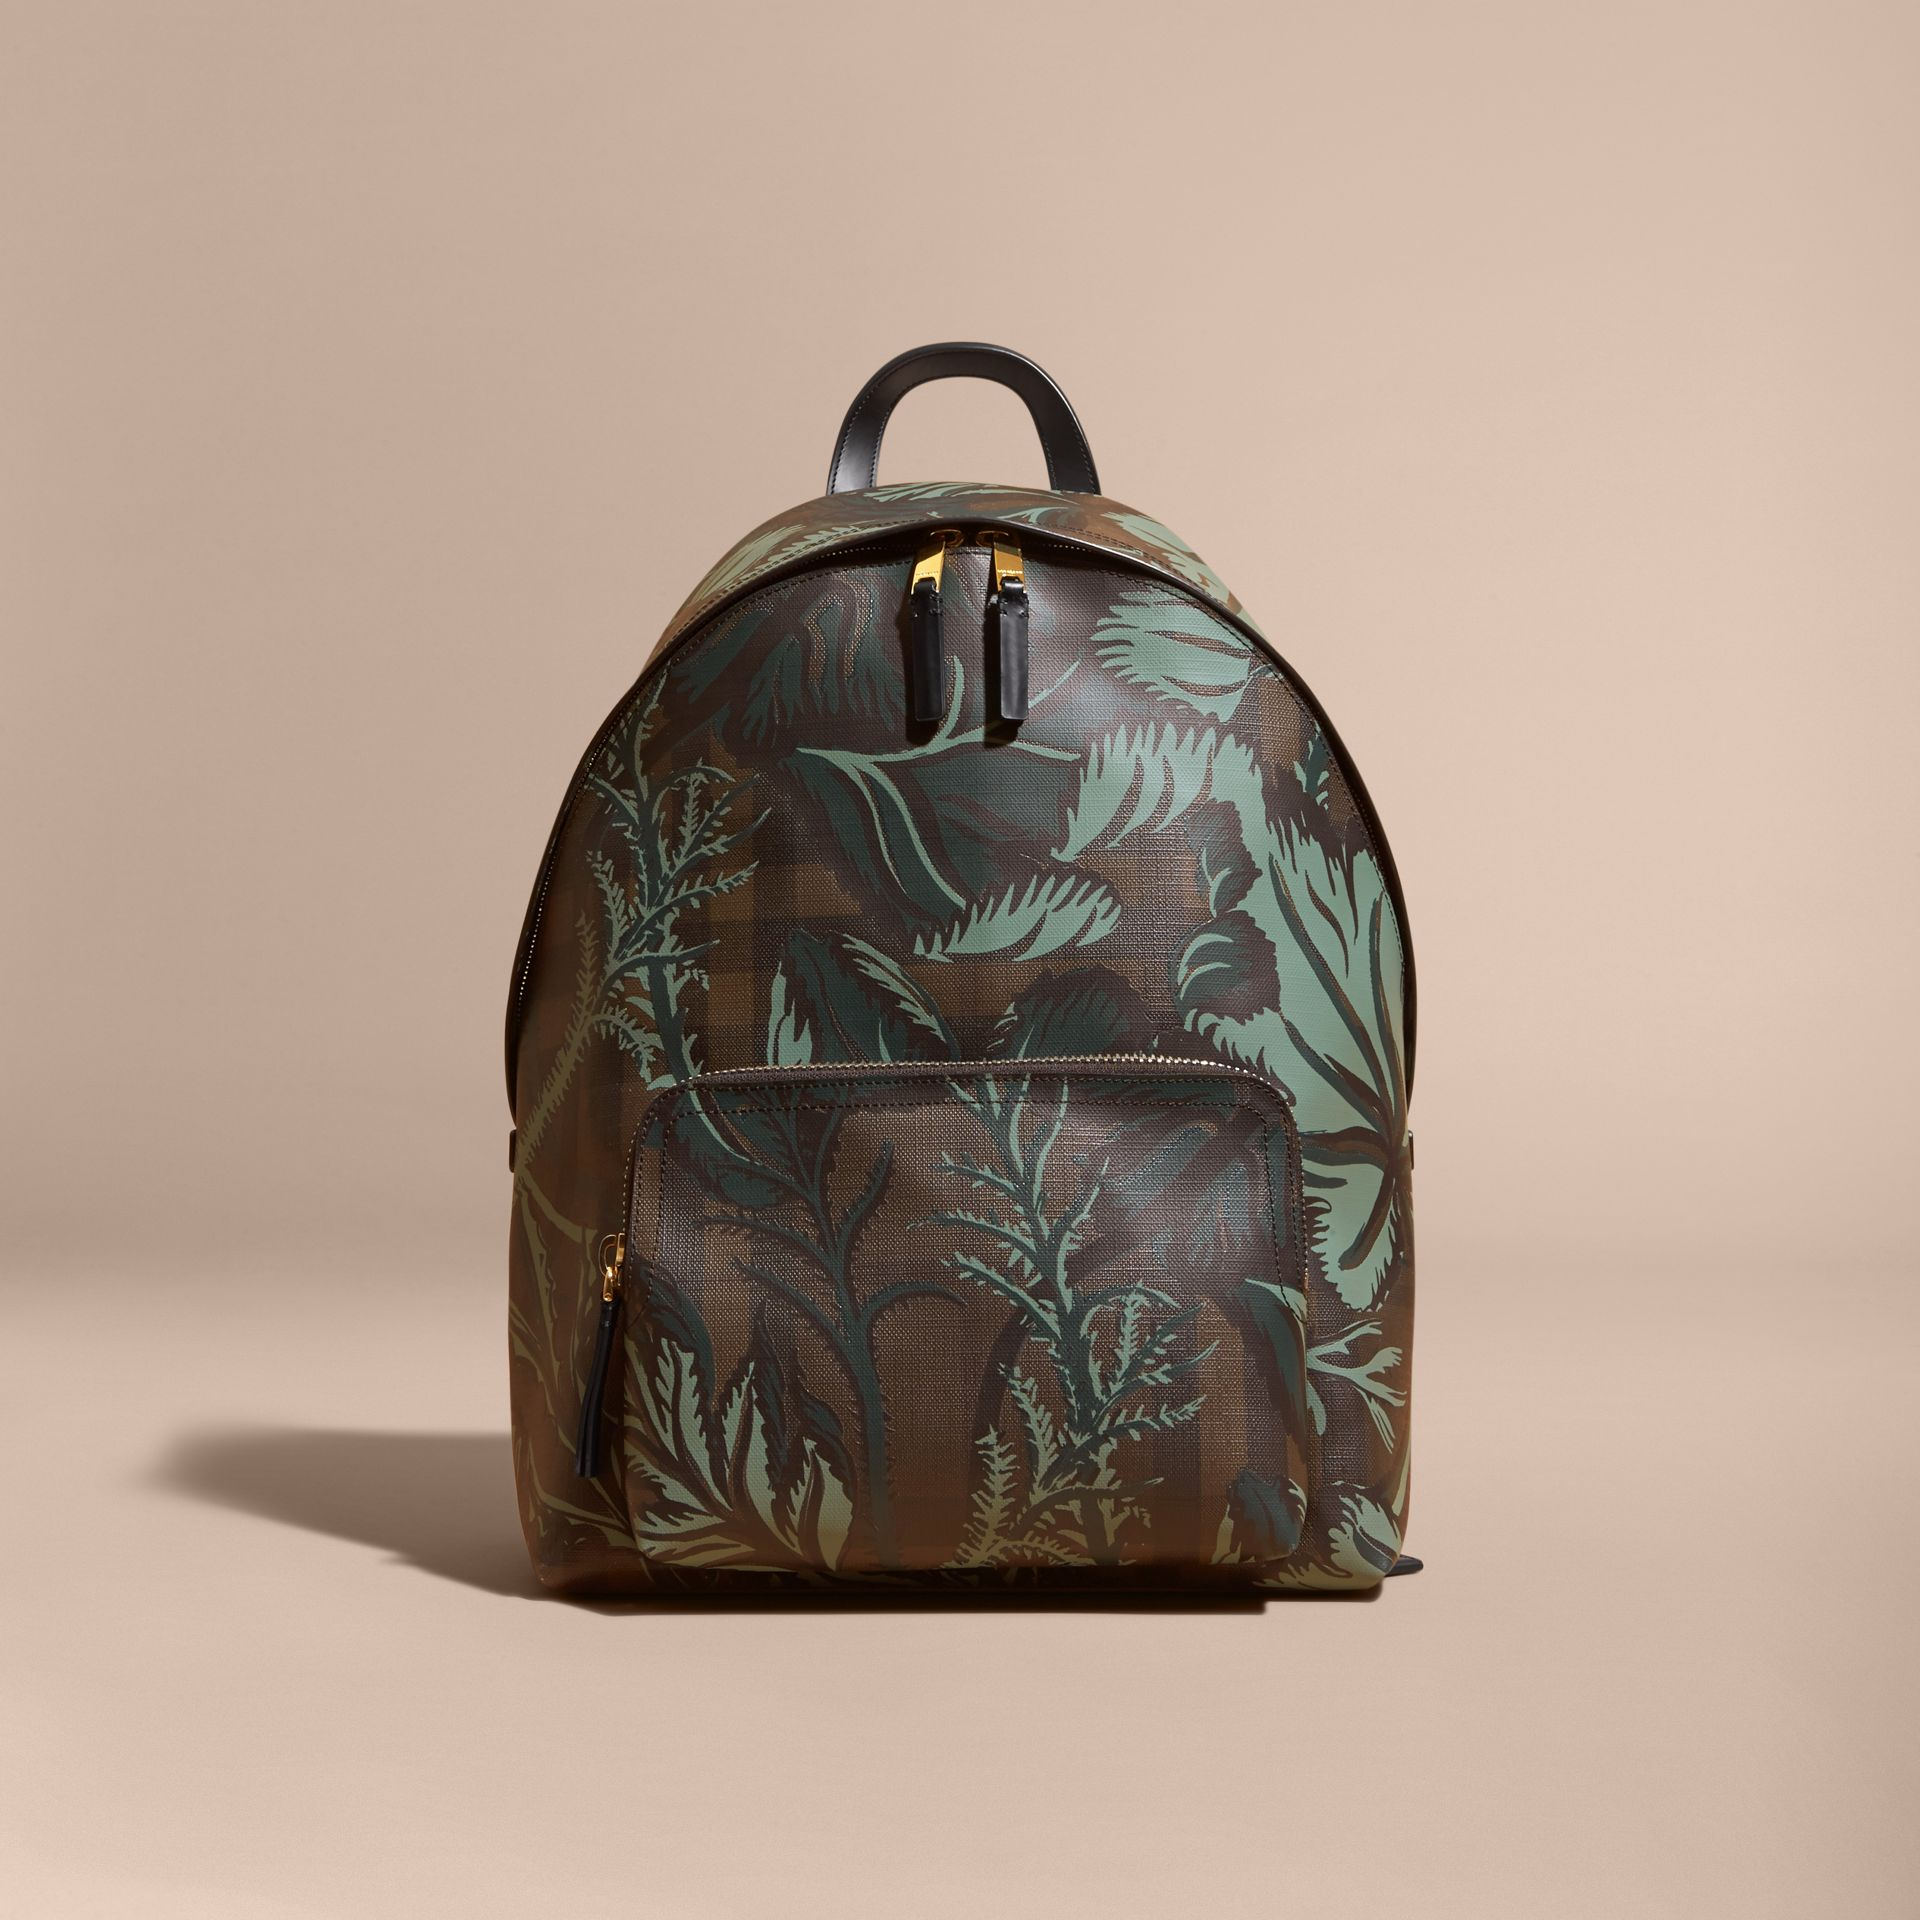 Leather Trim Floral Print London Check Backpack Chocolate - gallery image 8